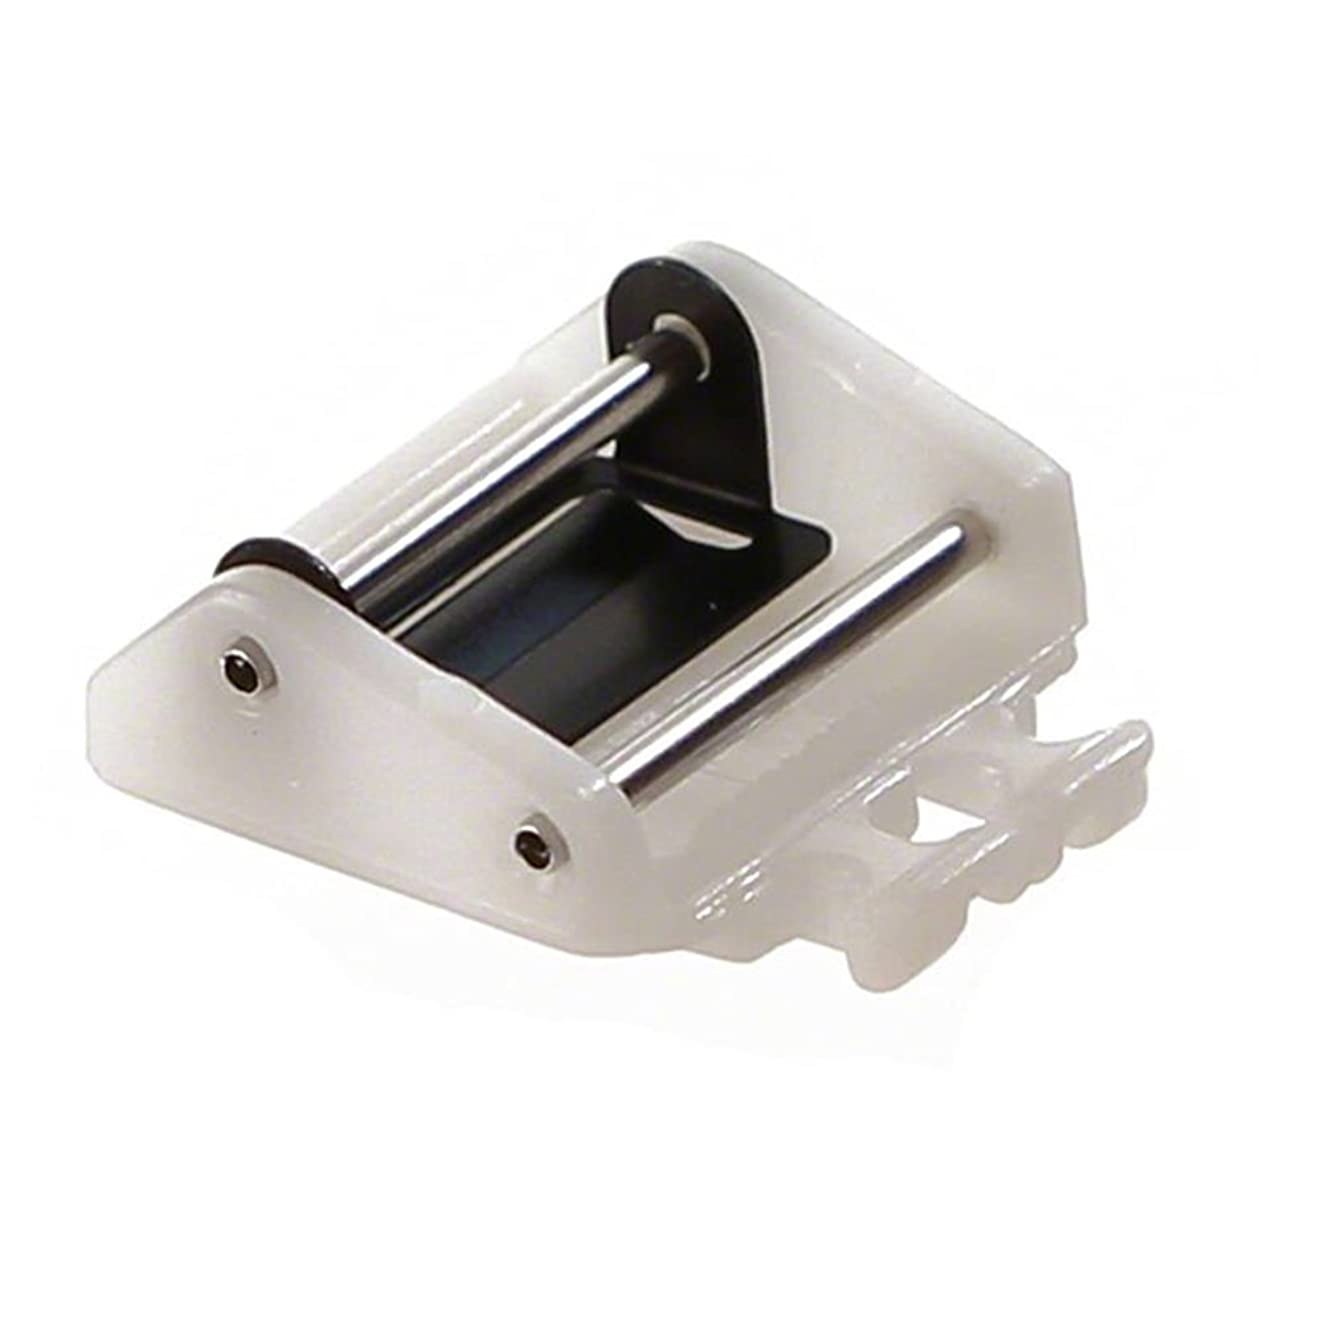 YEQIN Original Invisible Zipper Foot for Pfaff Hobby Sewing Machines #820287096